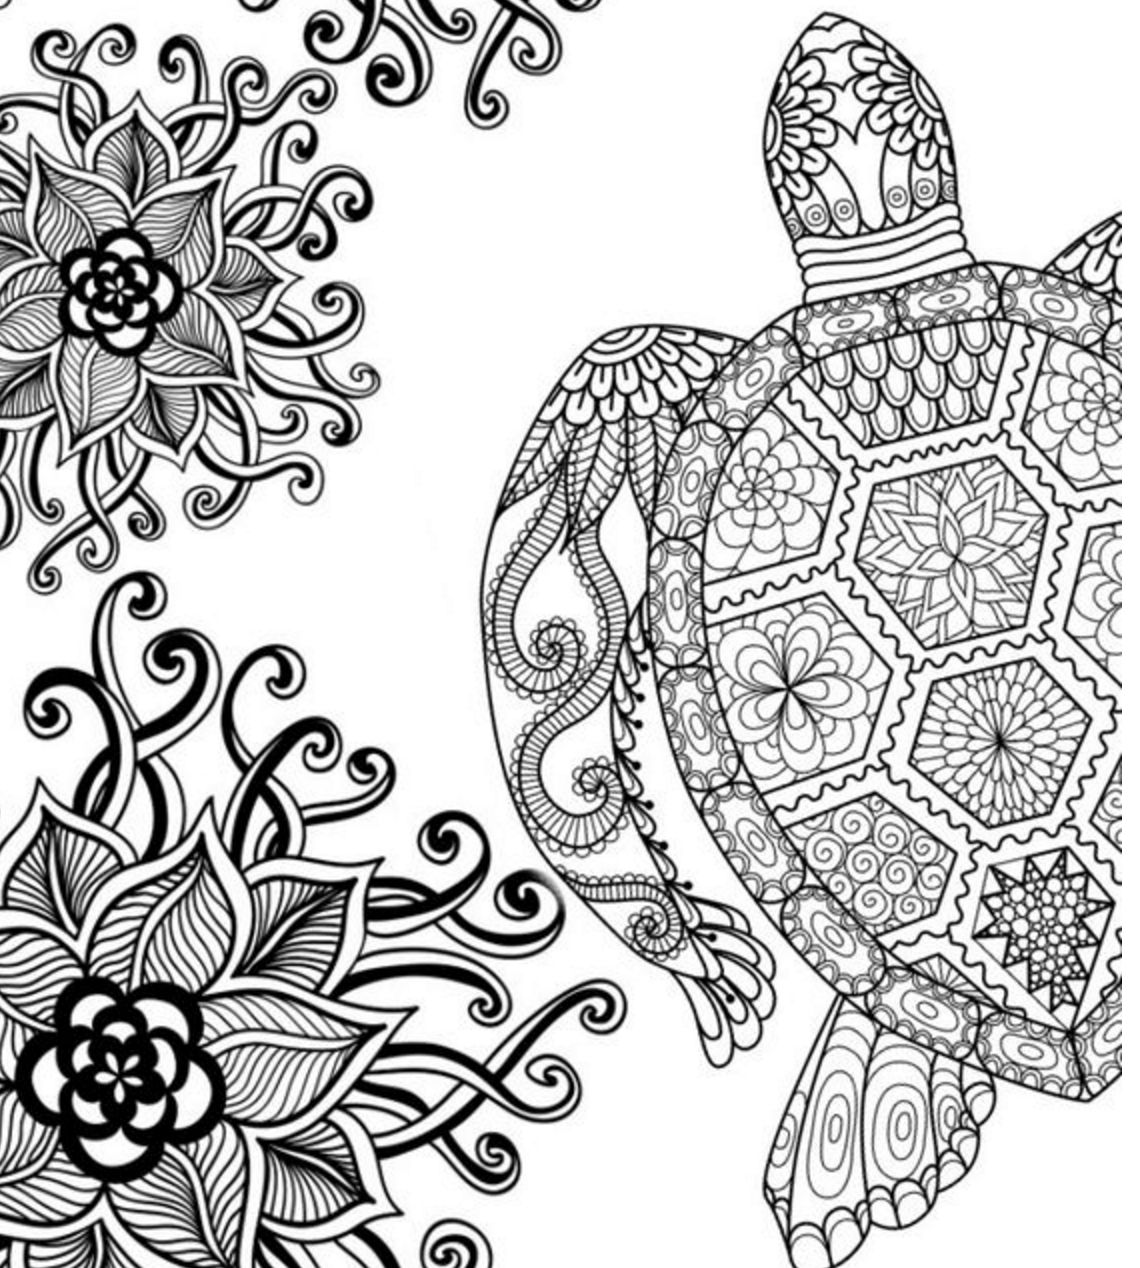 coloring pages for adults turtle hand drawn sea turtle for adult coloring pages stock pages coloring turtle for adults